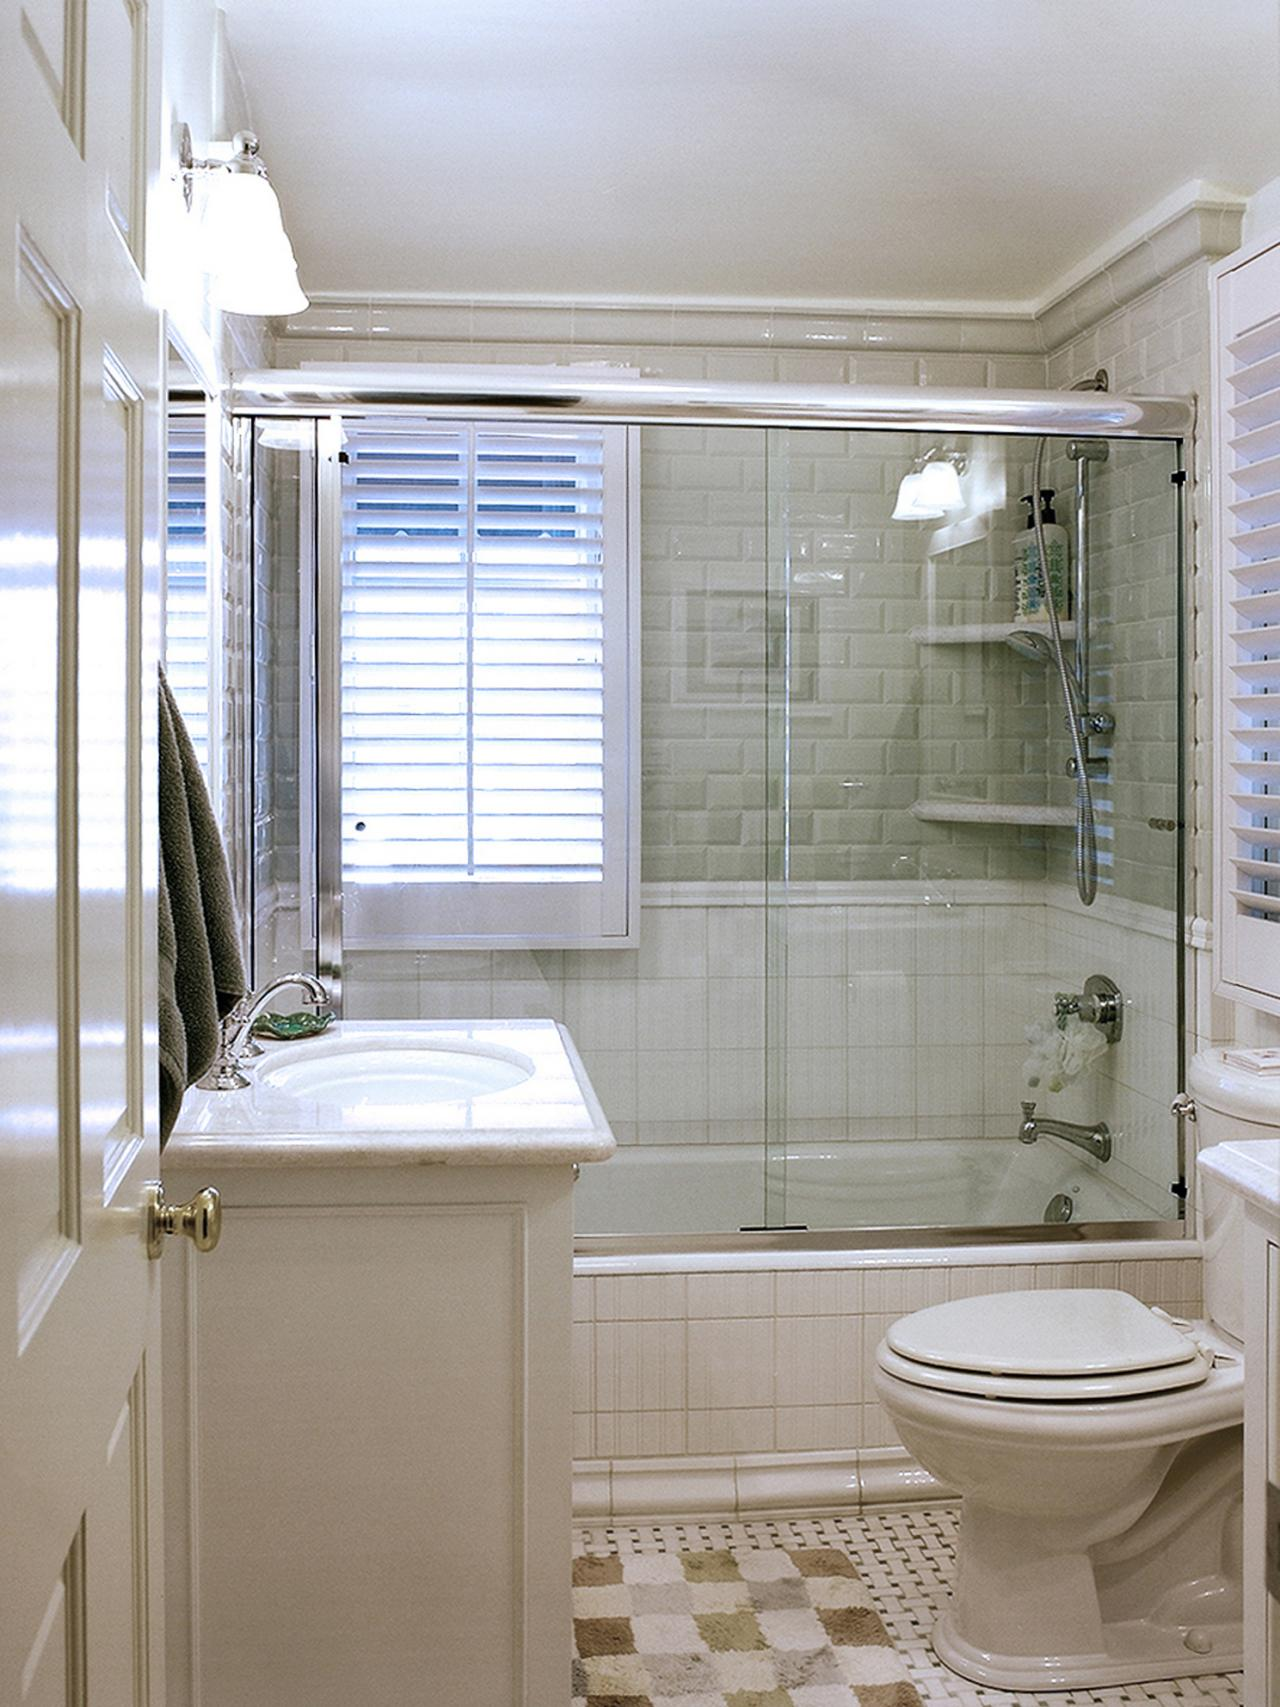 Starting a bathroom remodel hgtv - Small full bathroom remodel ideas ...